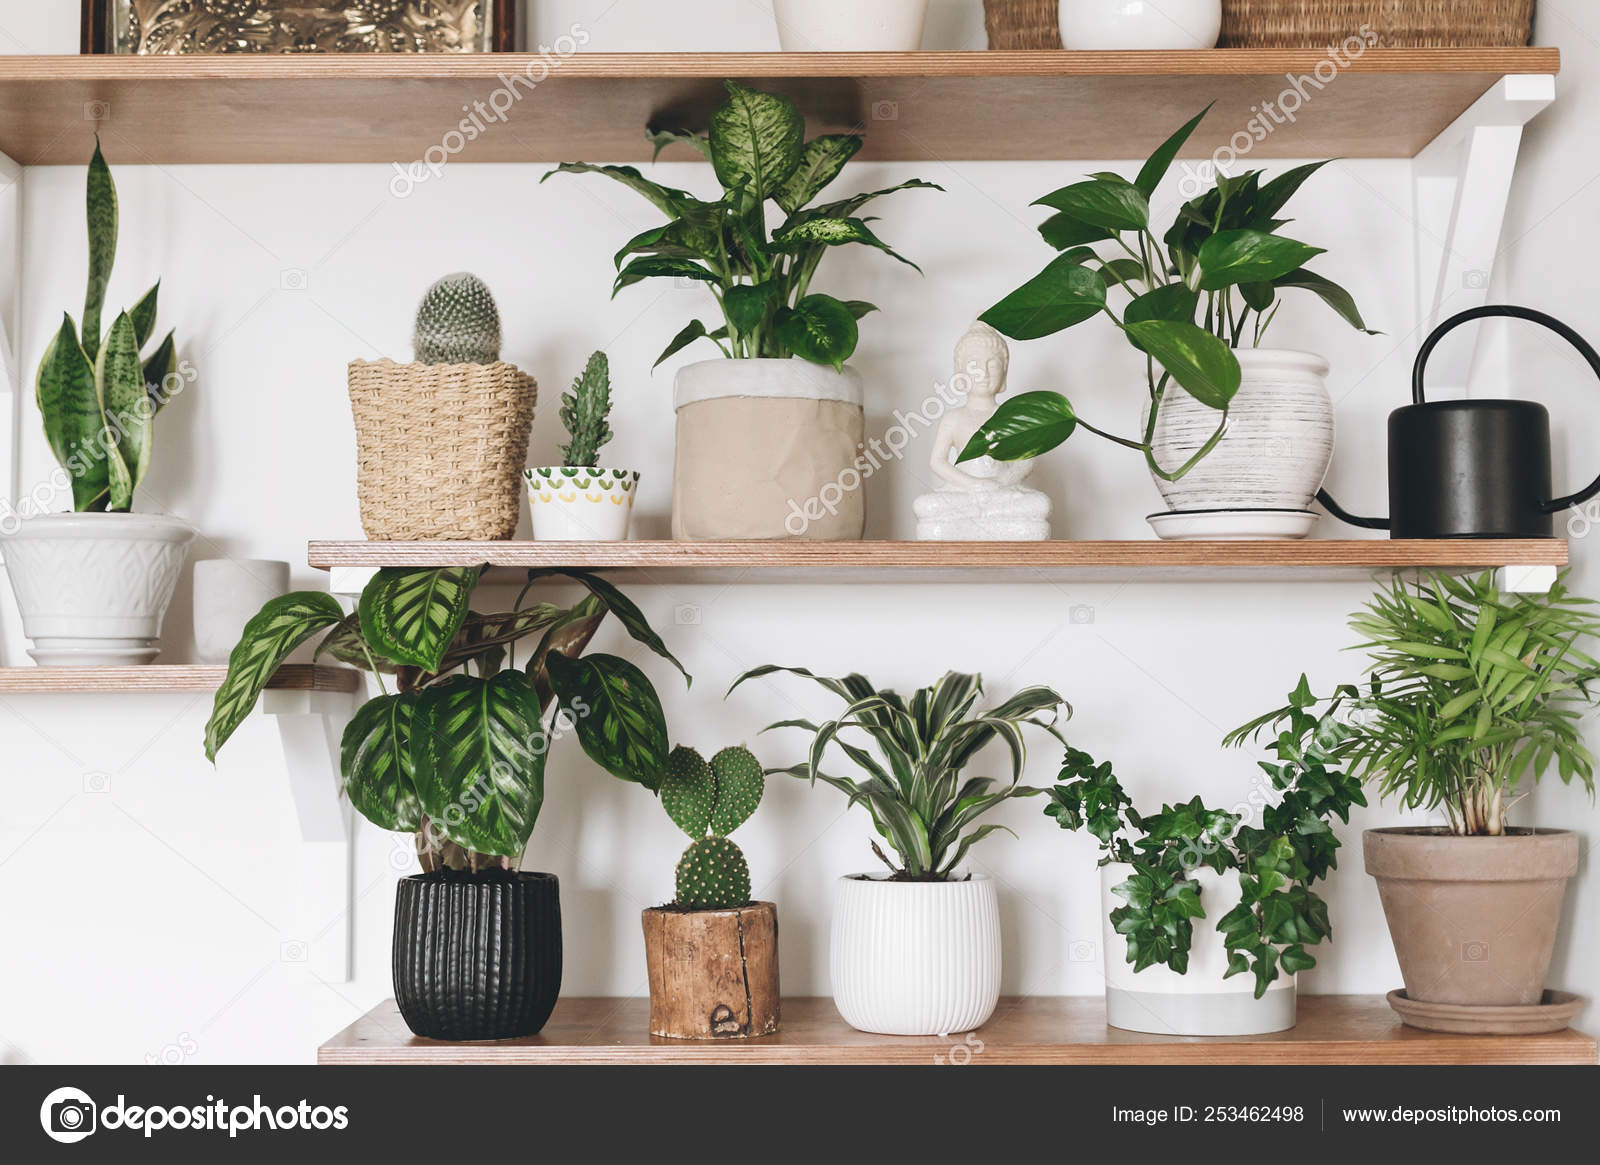 Stylish Wooden Shelves With Green Plants And Black Watering Can